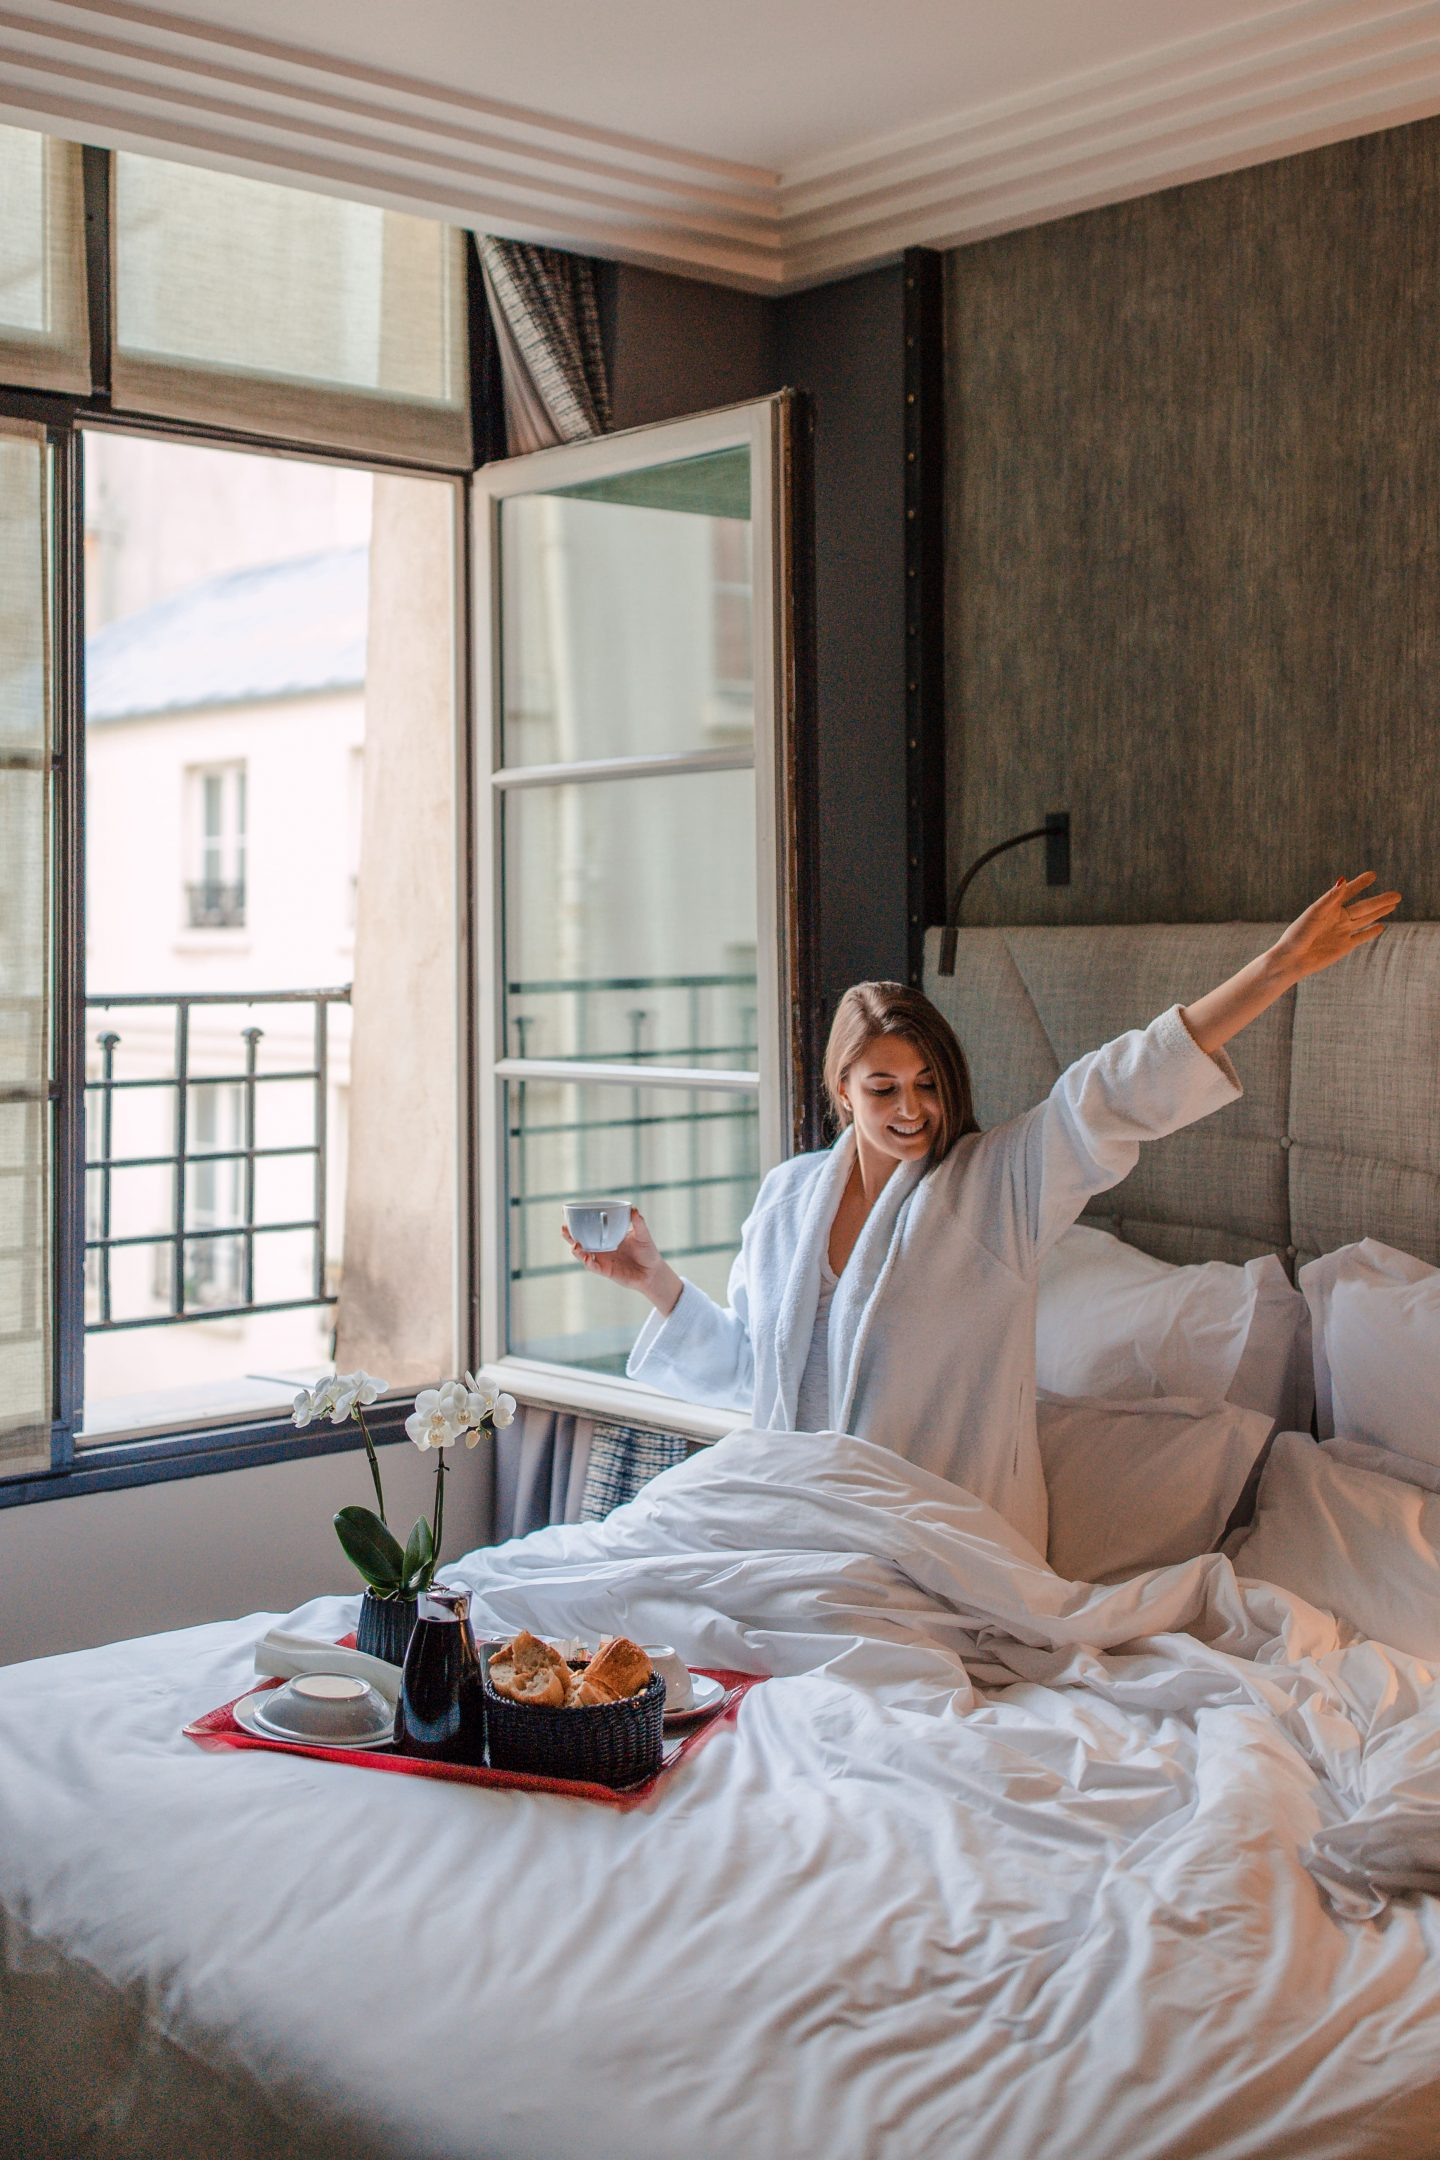 Staying at Hotel Therese Paris | 4 Star Hotel- Where to stay in Paris